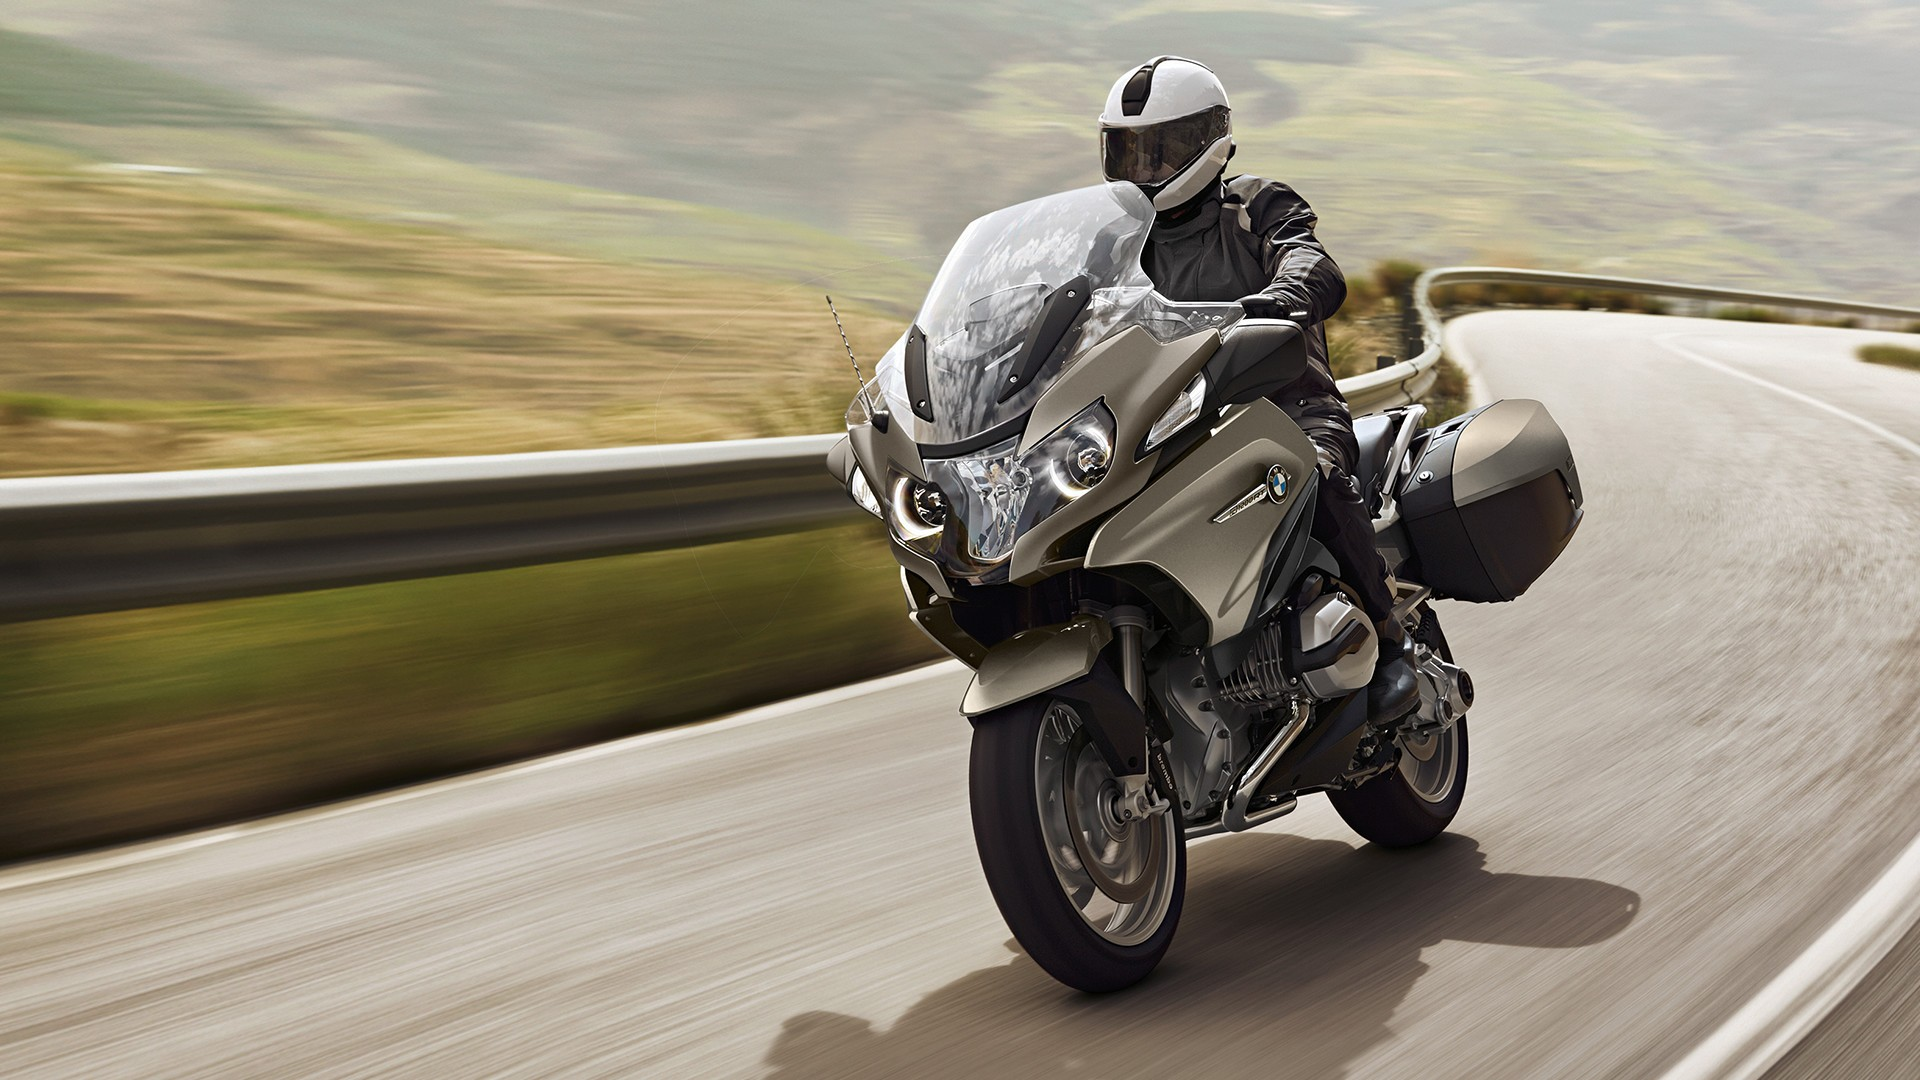 BMW R1200RT 2015 images #162906